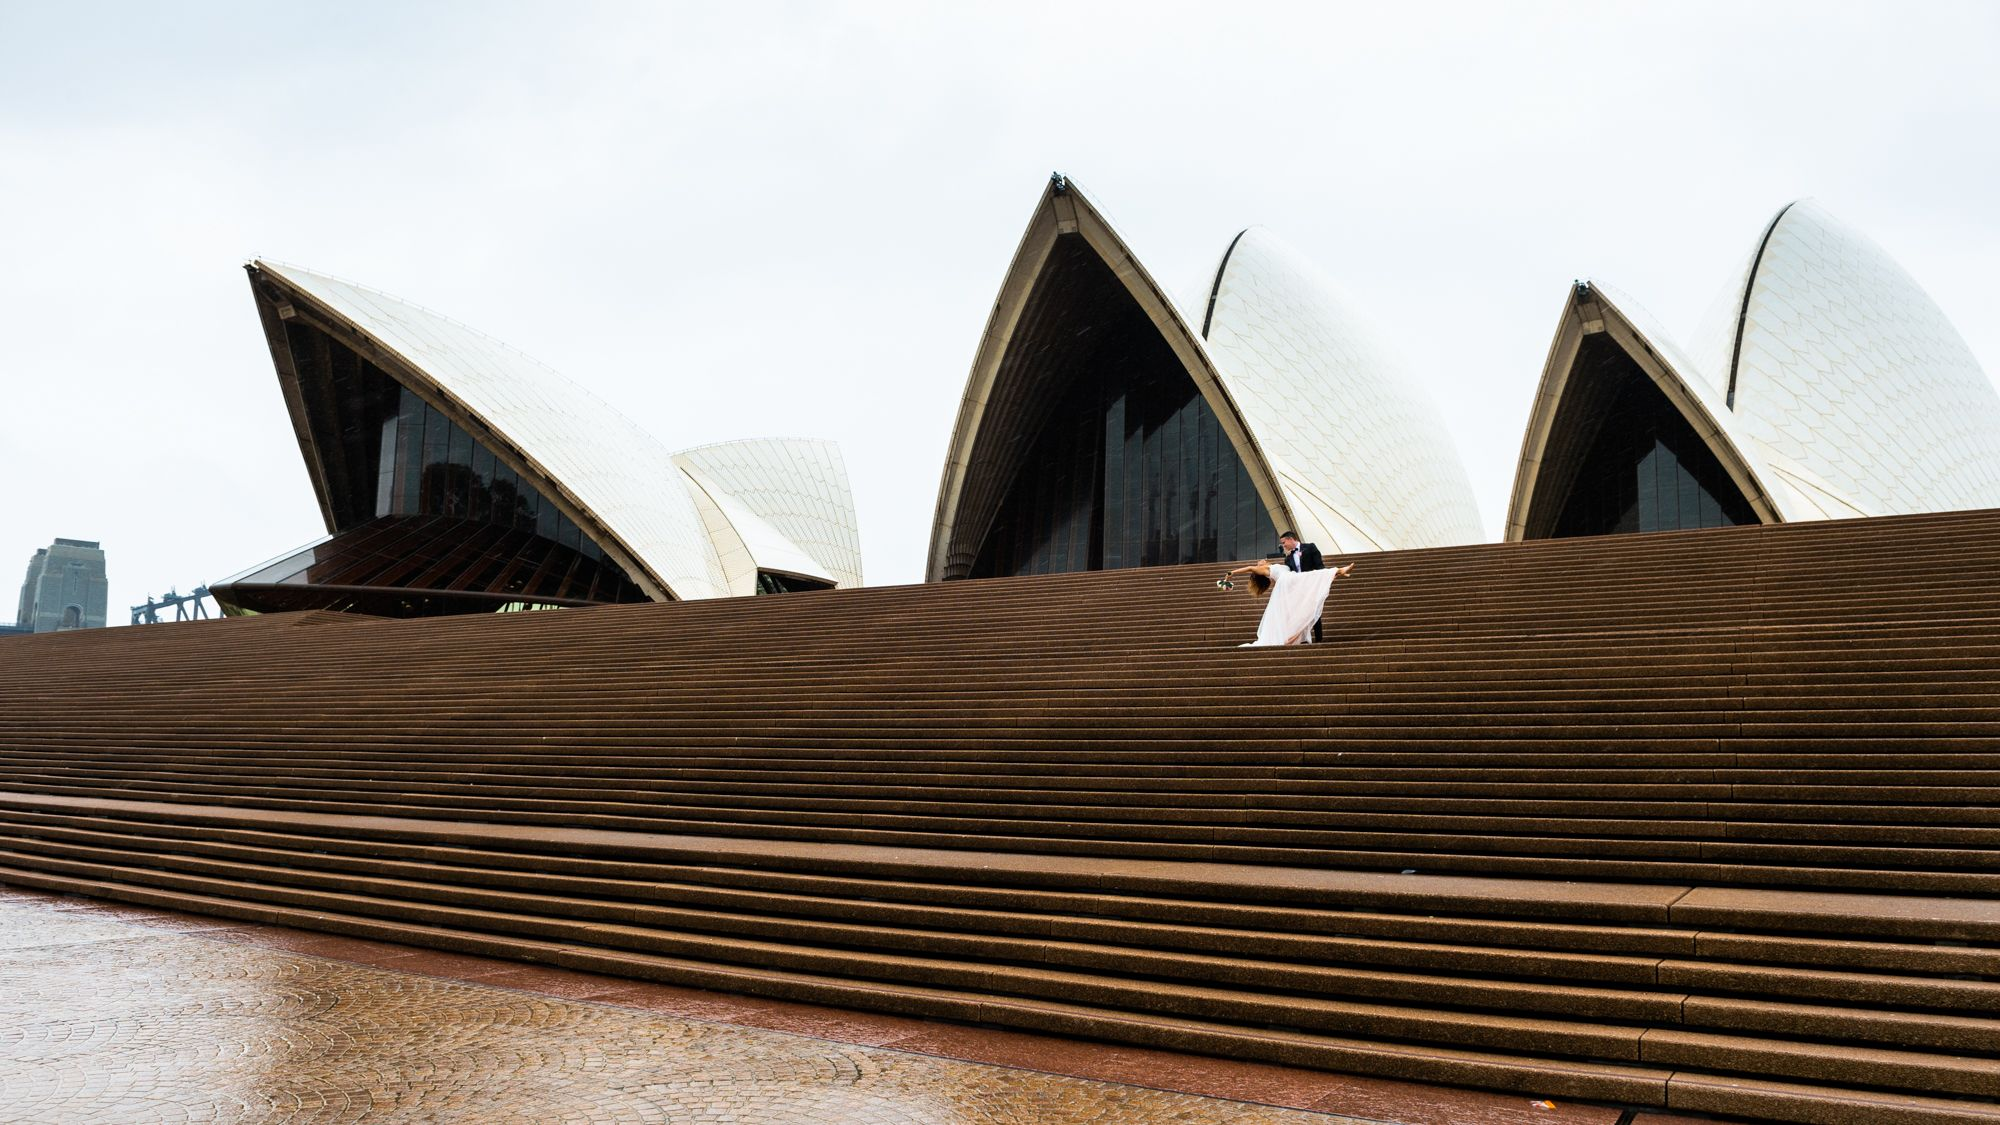 Wedding at Sydney Opera House